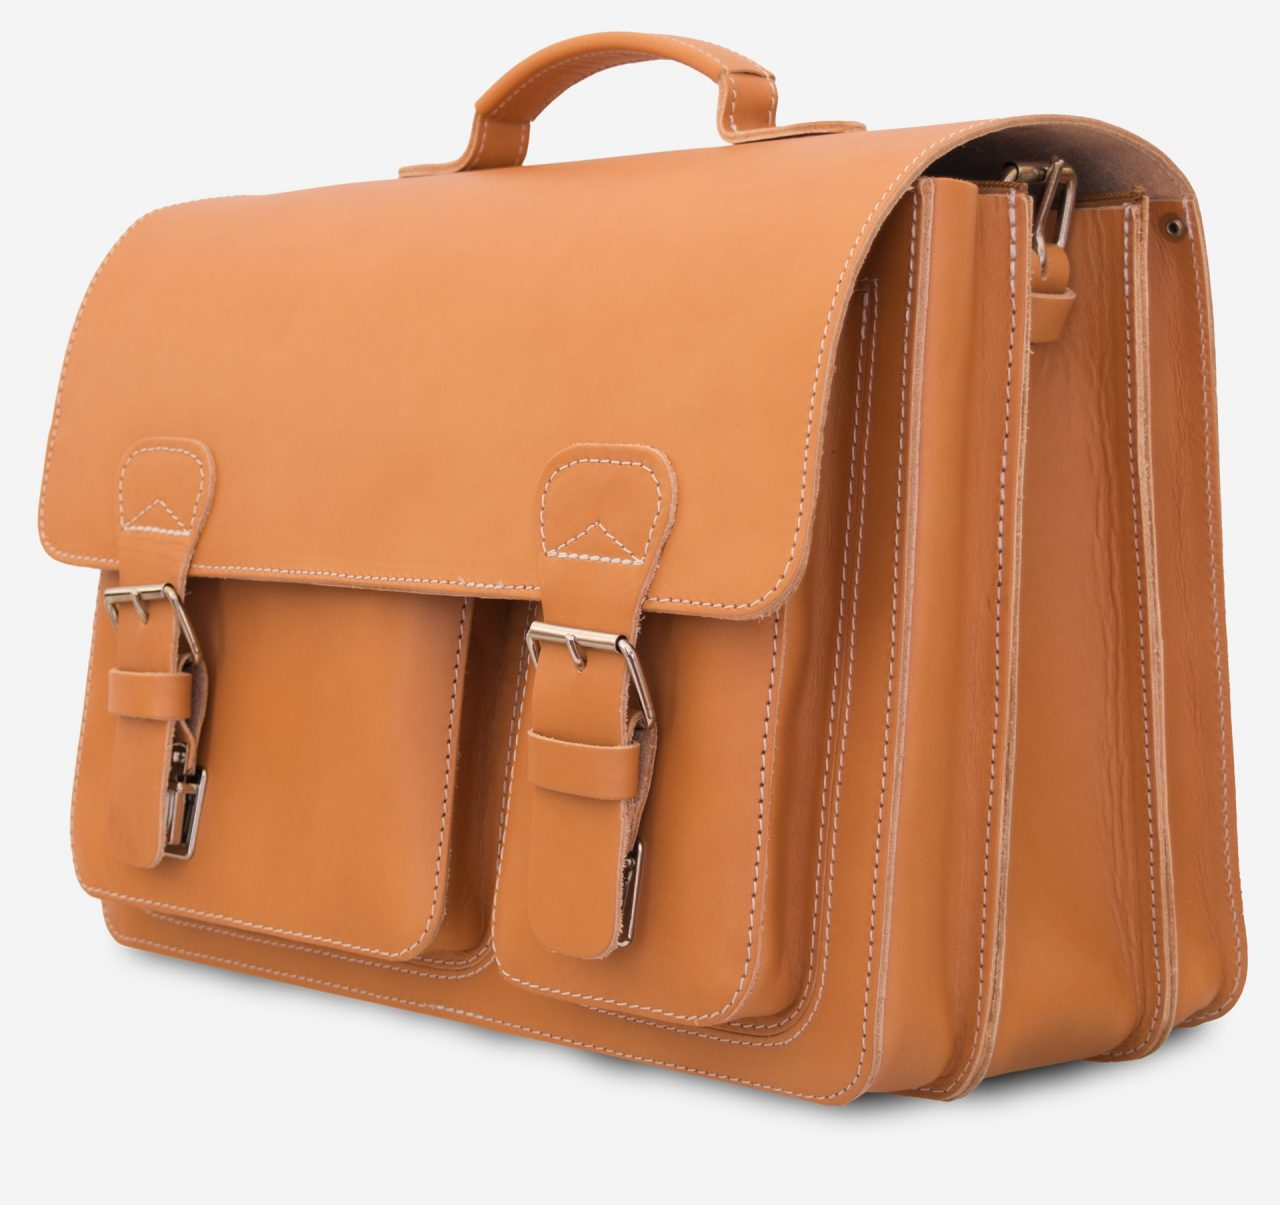 Large tan leather satchel briefcase with 3 compartments and 2 asymmetric front pockets.